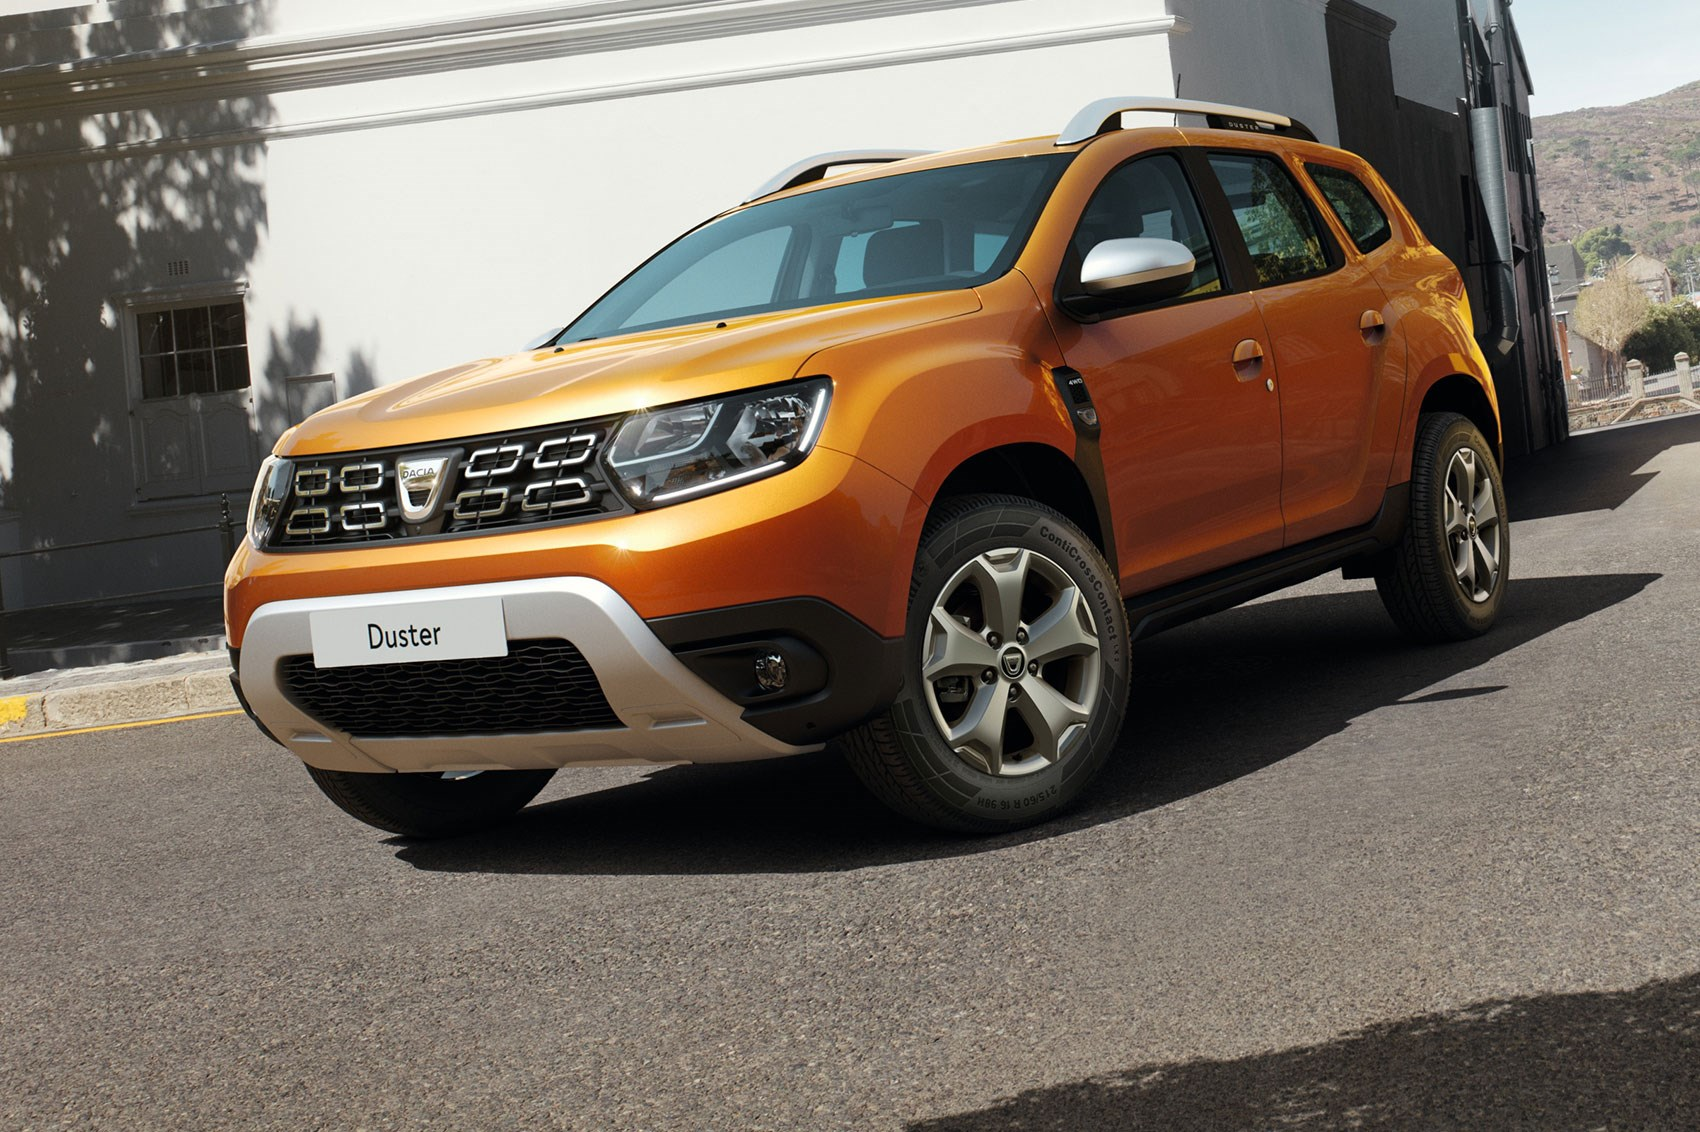 new 2018 dacia duster revealed pictures specs details. Black Bedroom Furniture Sets. Home Design Ideas